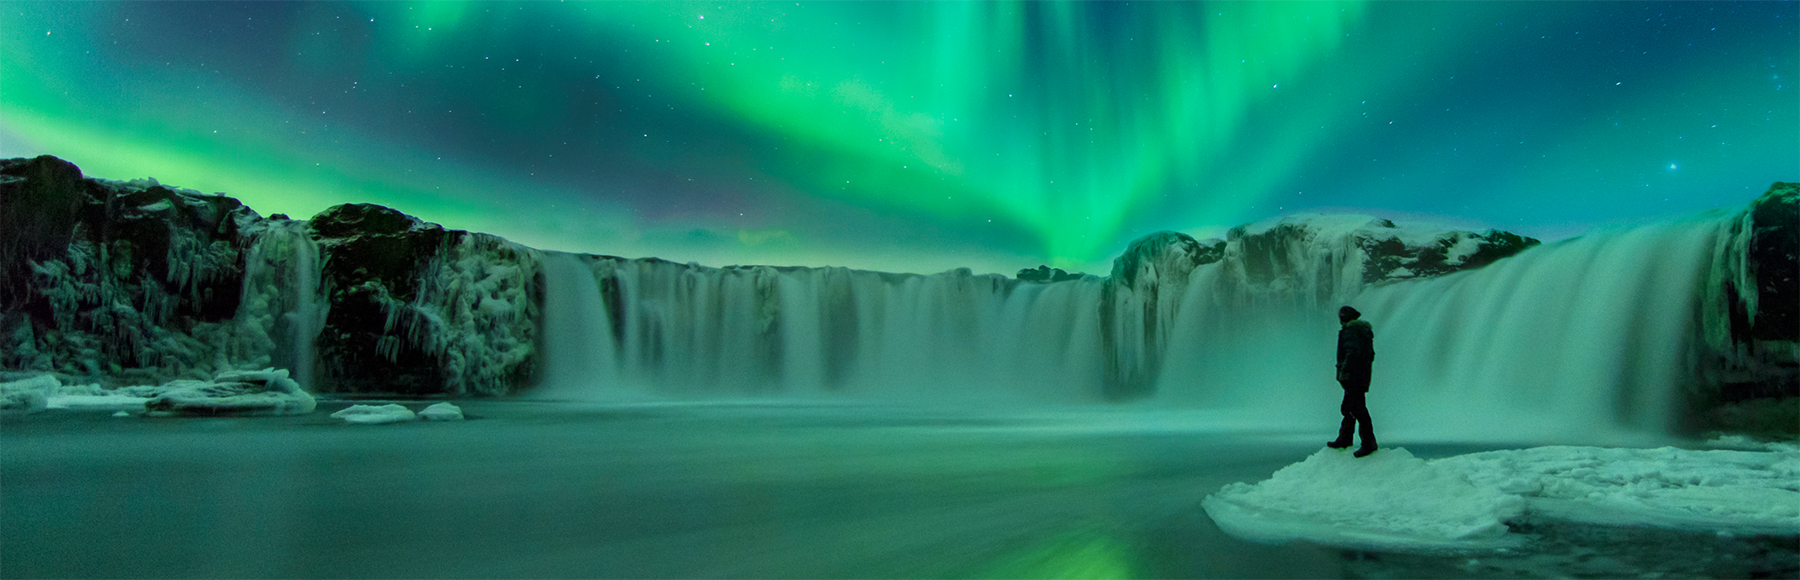 Person on ice looking out at a waterfall under the Northern Lights